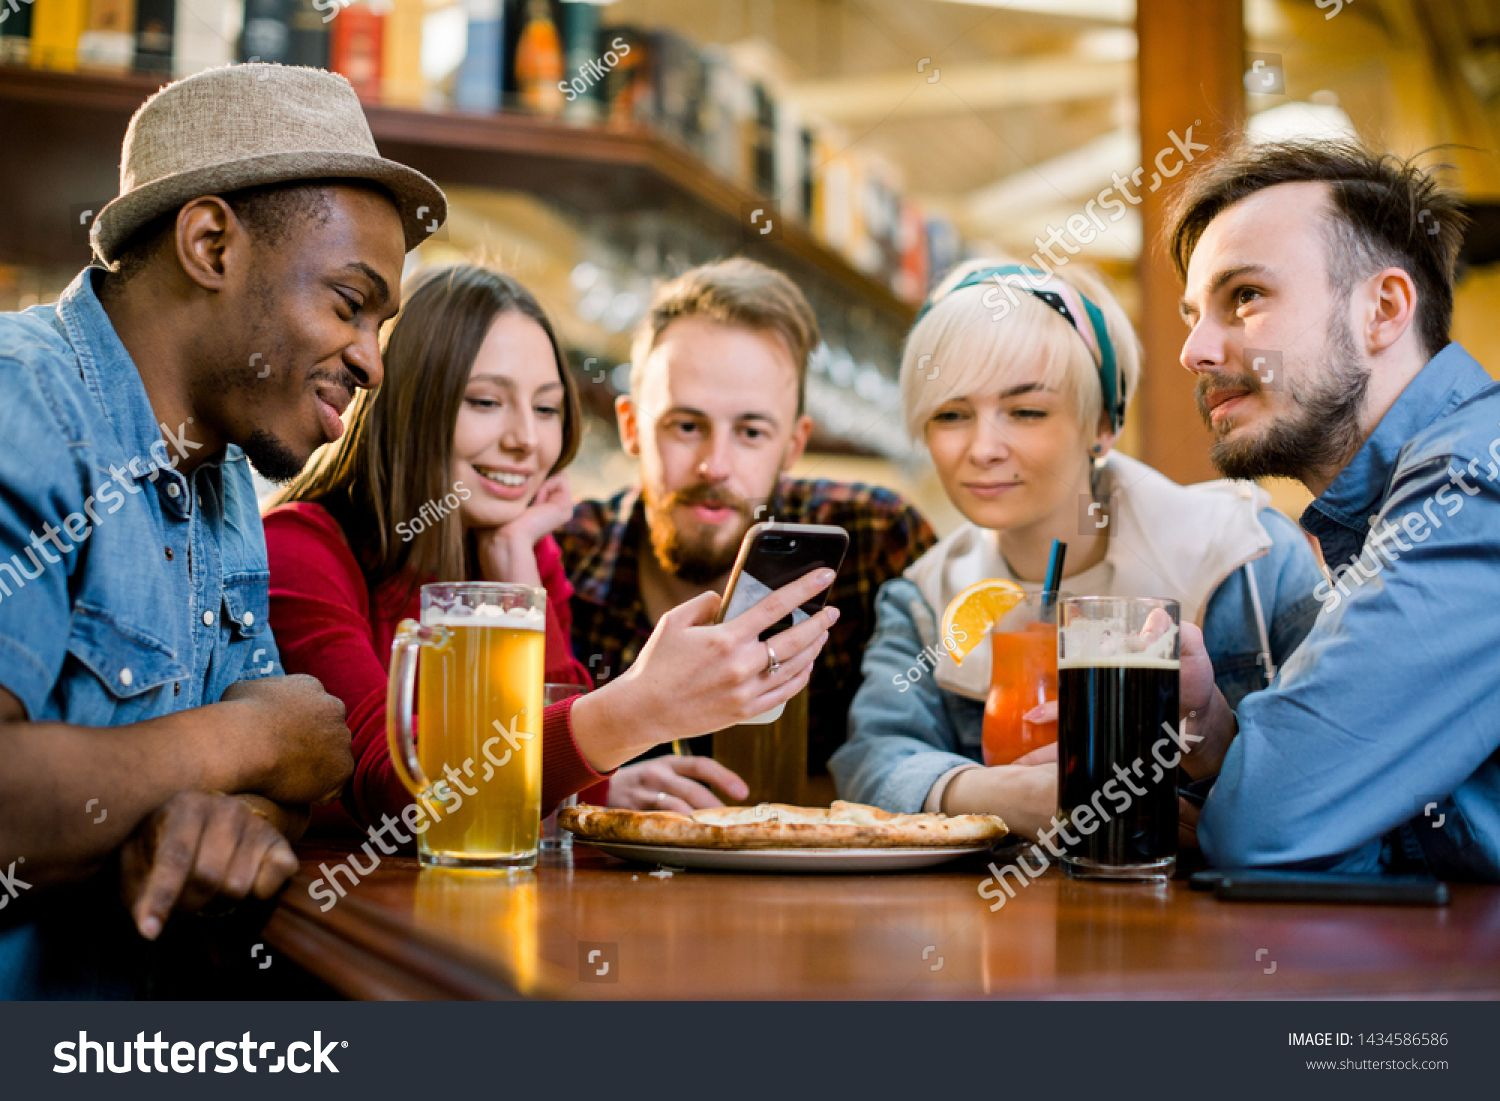 Young friends sharing pizza in a indoor cafe Multiracial happy millennial friends having fun eating pizza together laughing at funny joke and using smartphone